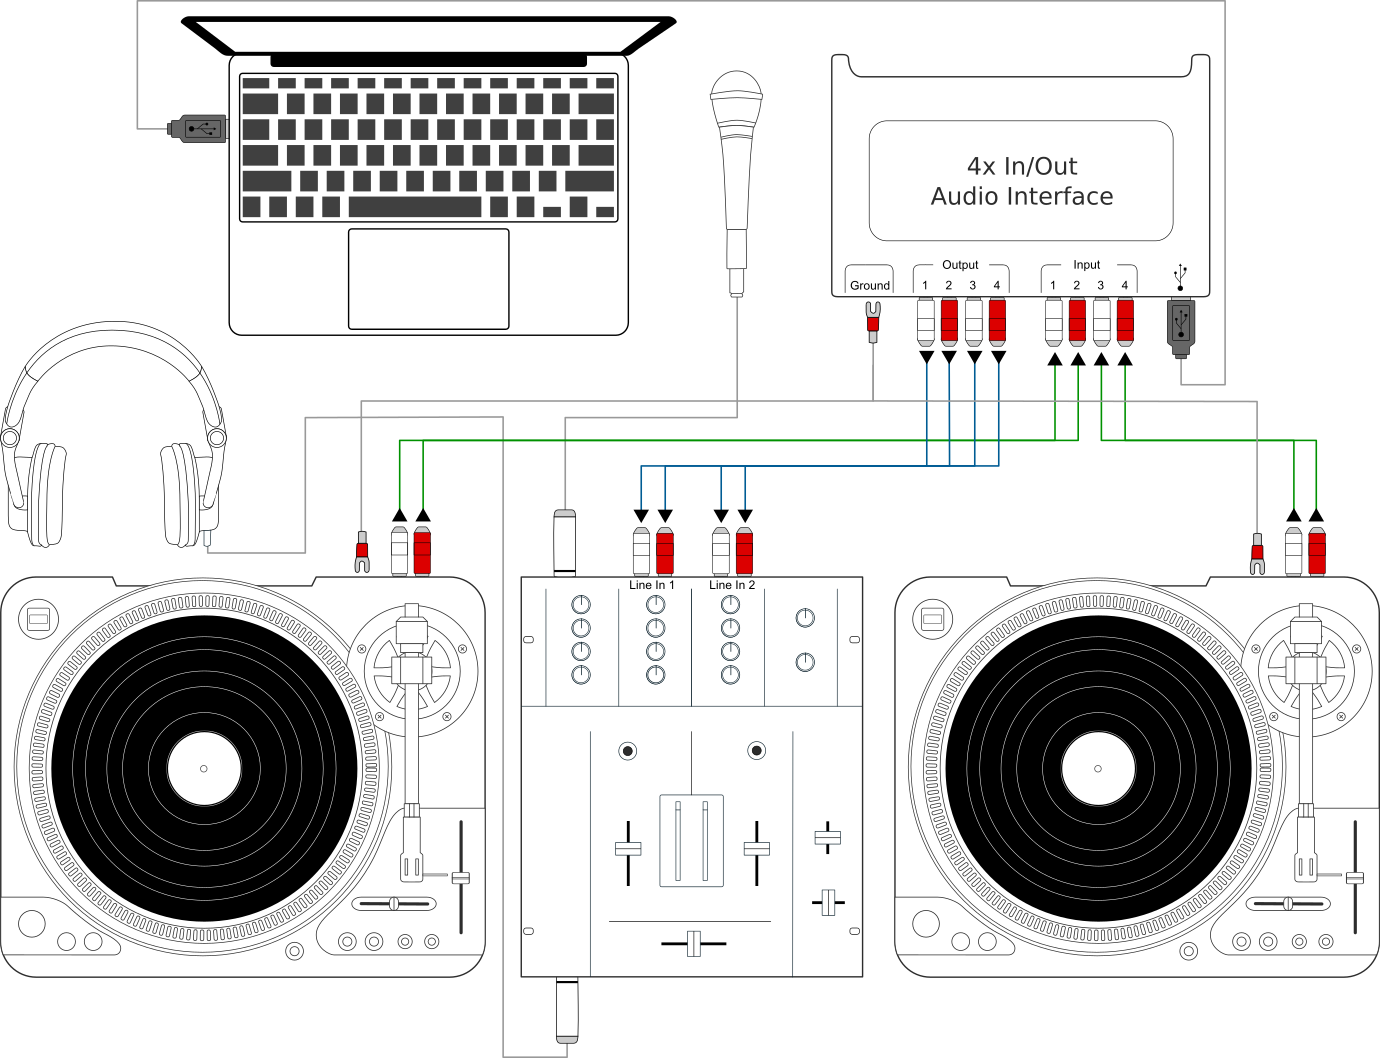 Laptop External Diagram Wiring Libraries Asus A8e A8s Block 6 Example Setups U2014 Mixxx User Manualusing Together With Turntables And Mixer